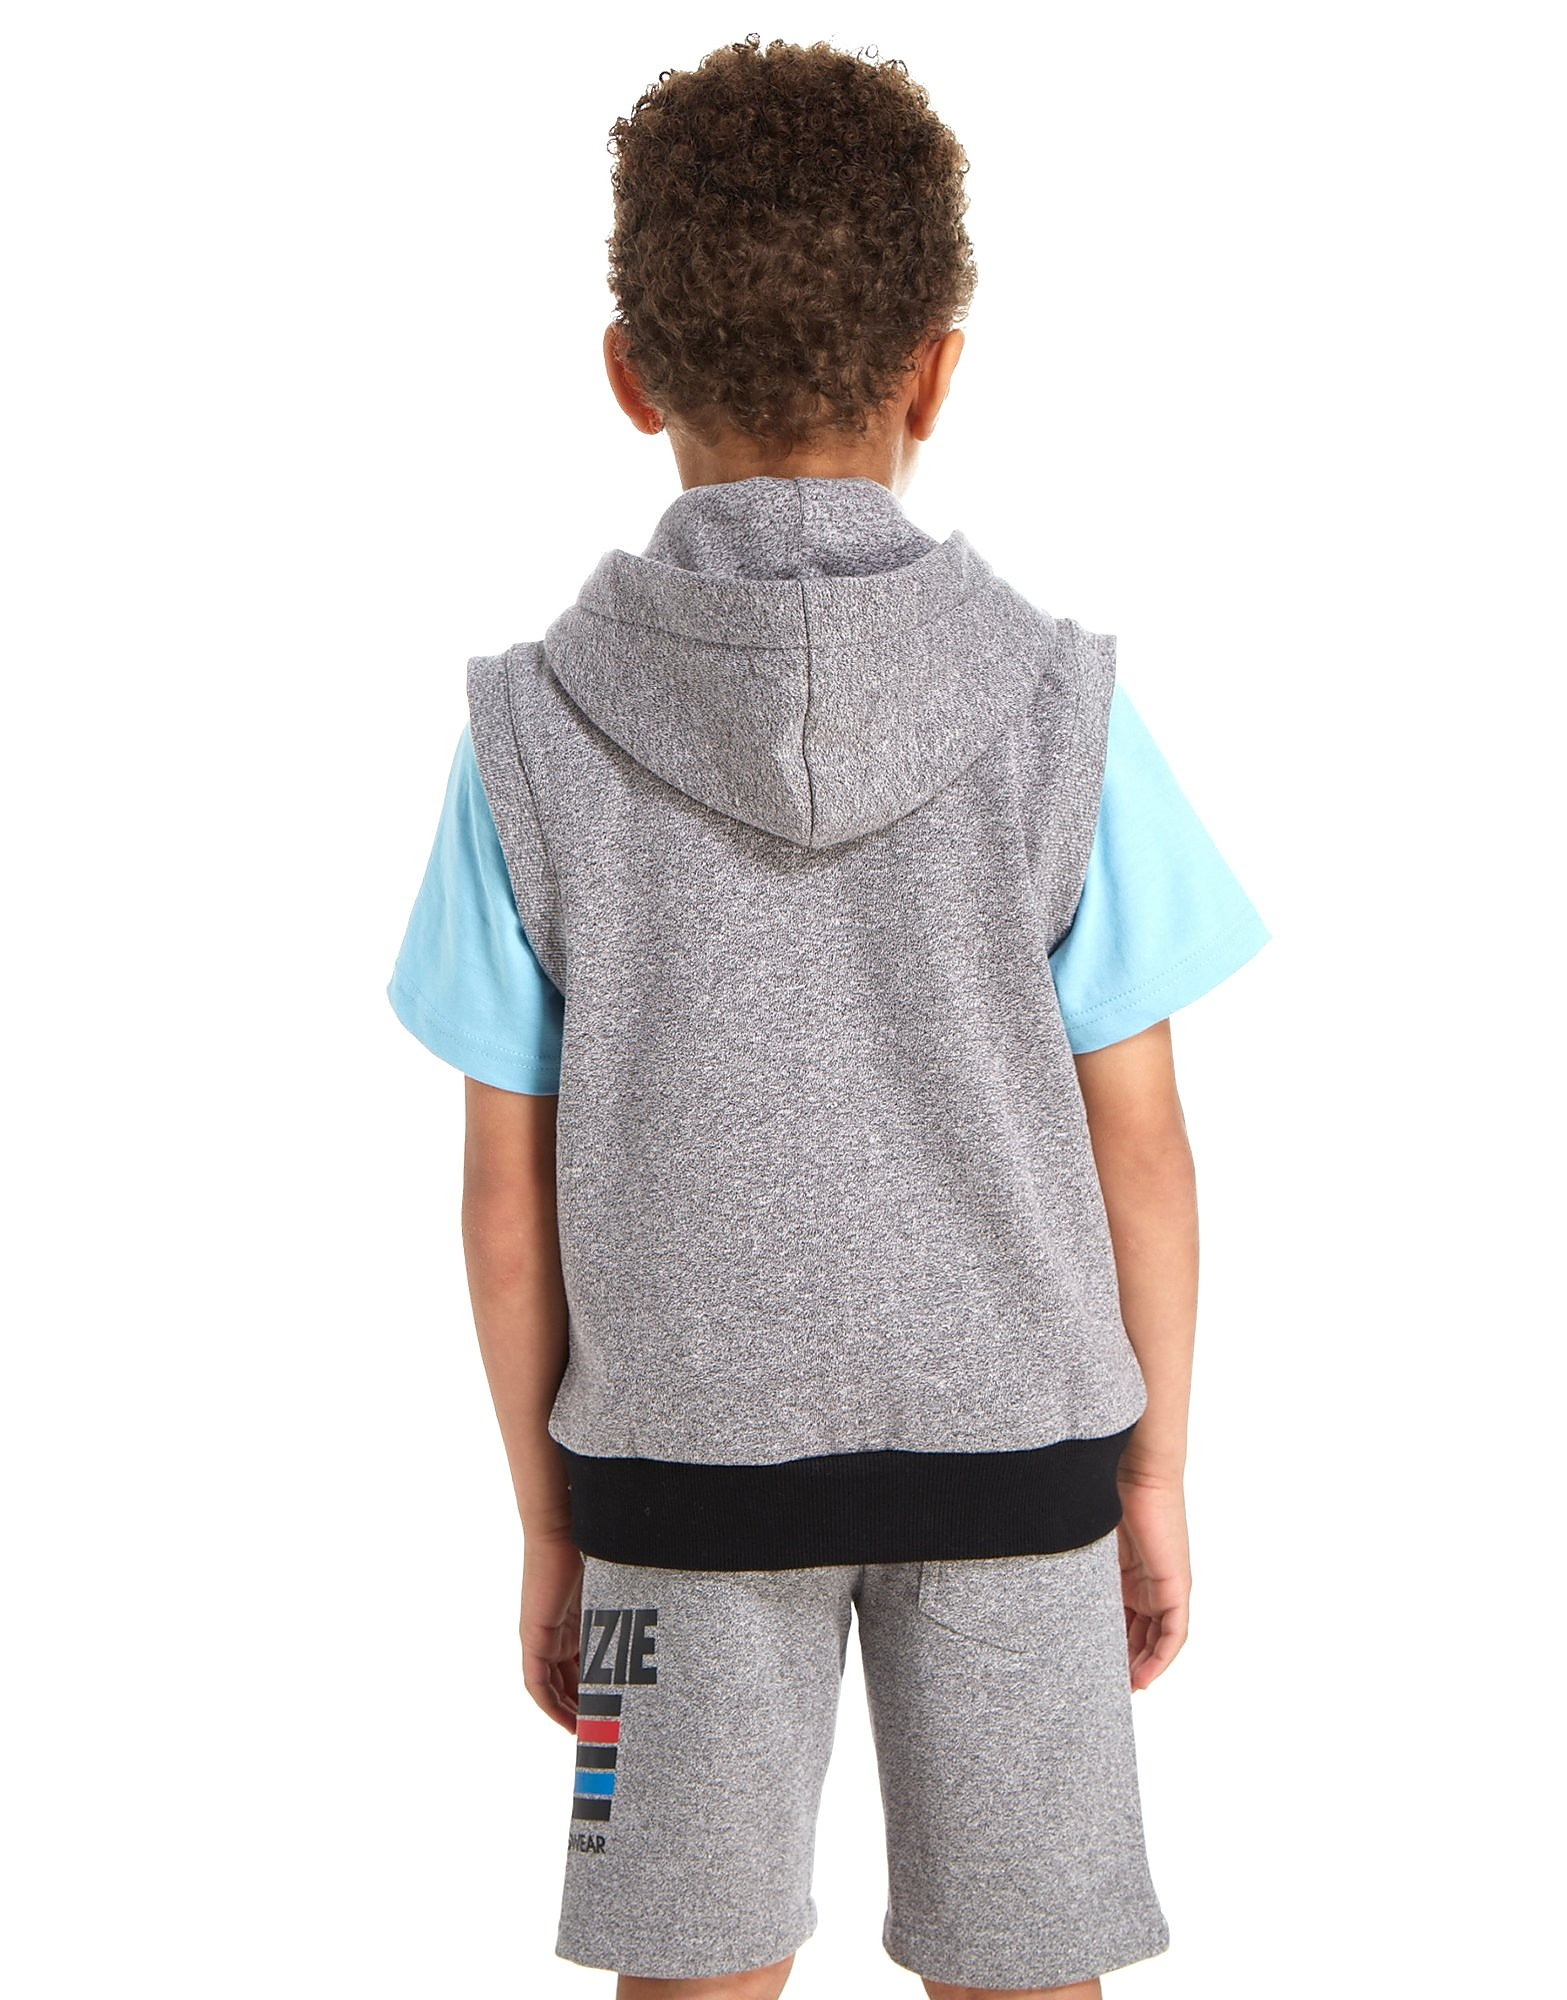 McKenzie King Sleeveless Hoody Children